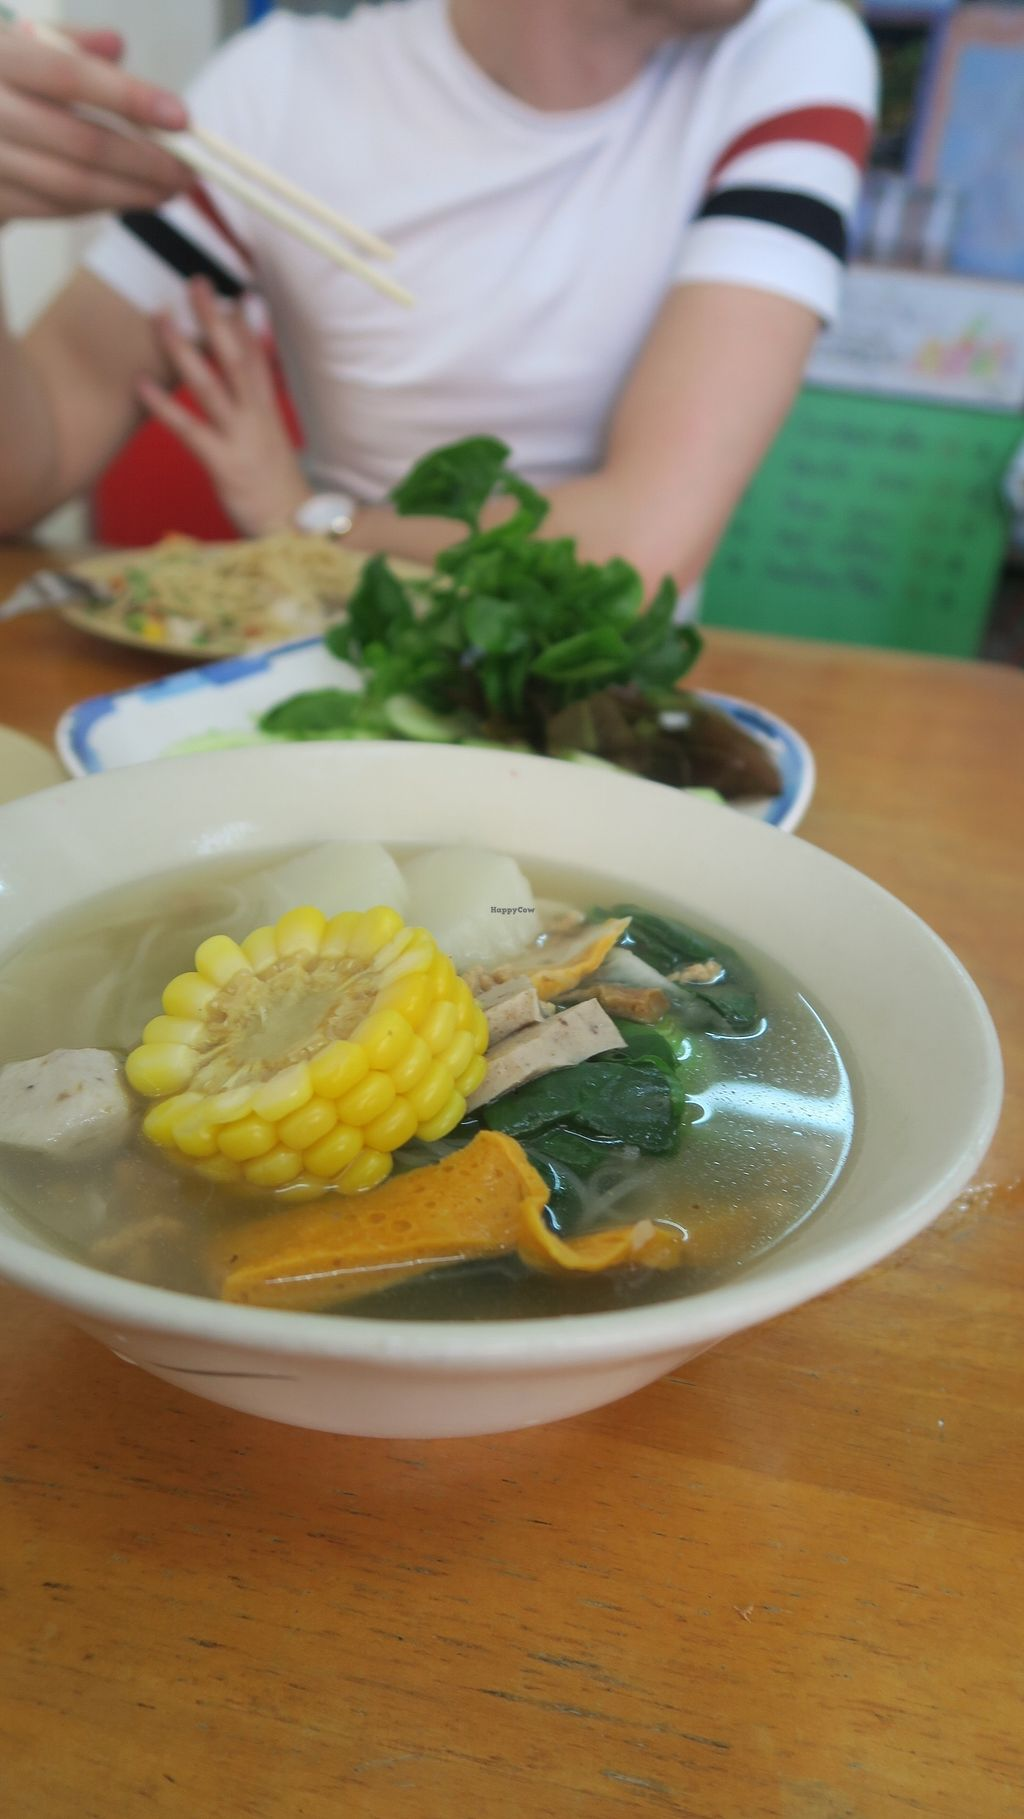 """Photo of Hongming Vegetarian Food  by <a href=""""/members/profile/Nikolate"""">Nikolate</a> <br/>soup <br/> March 2, 2018  - <a href='/contact/abuse/image/70471/365679'>Report</a>"""